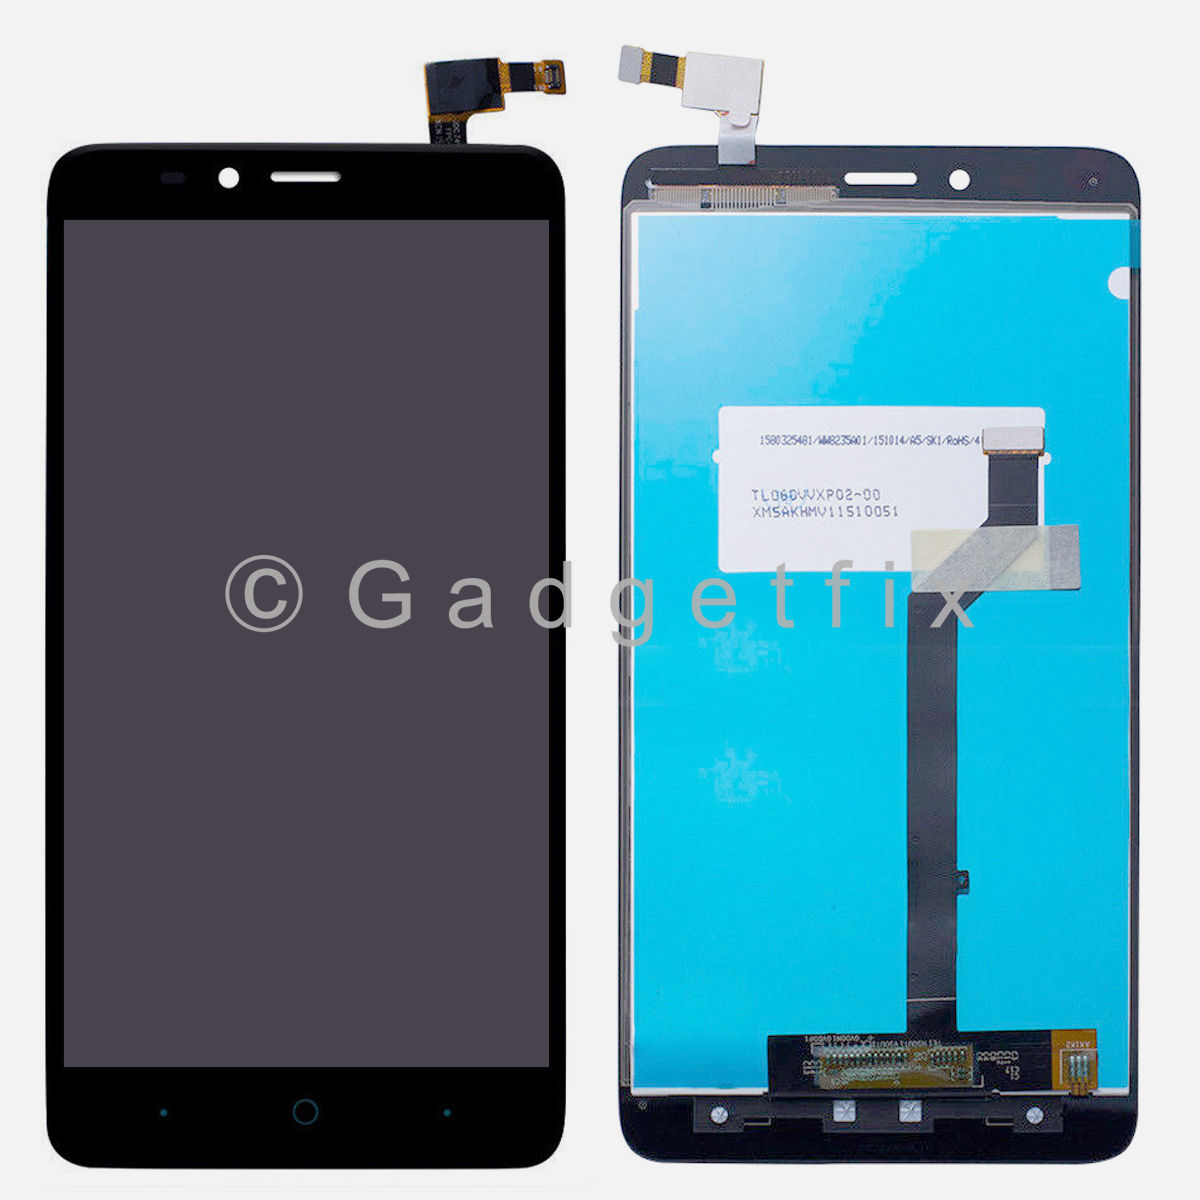 US ZTE Imperial MAX Z963 Z963U Z963VL LCD Screen Touch Screen Digitizer Assembly